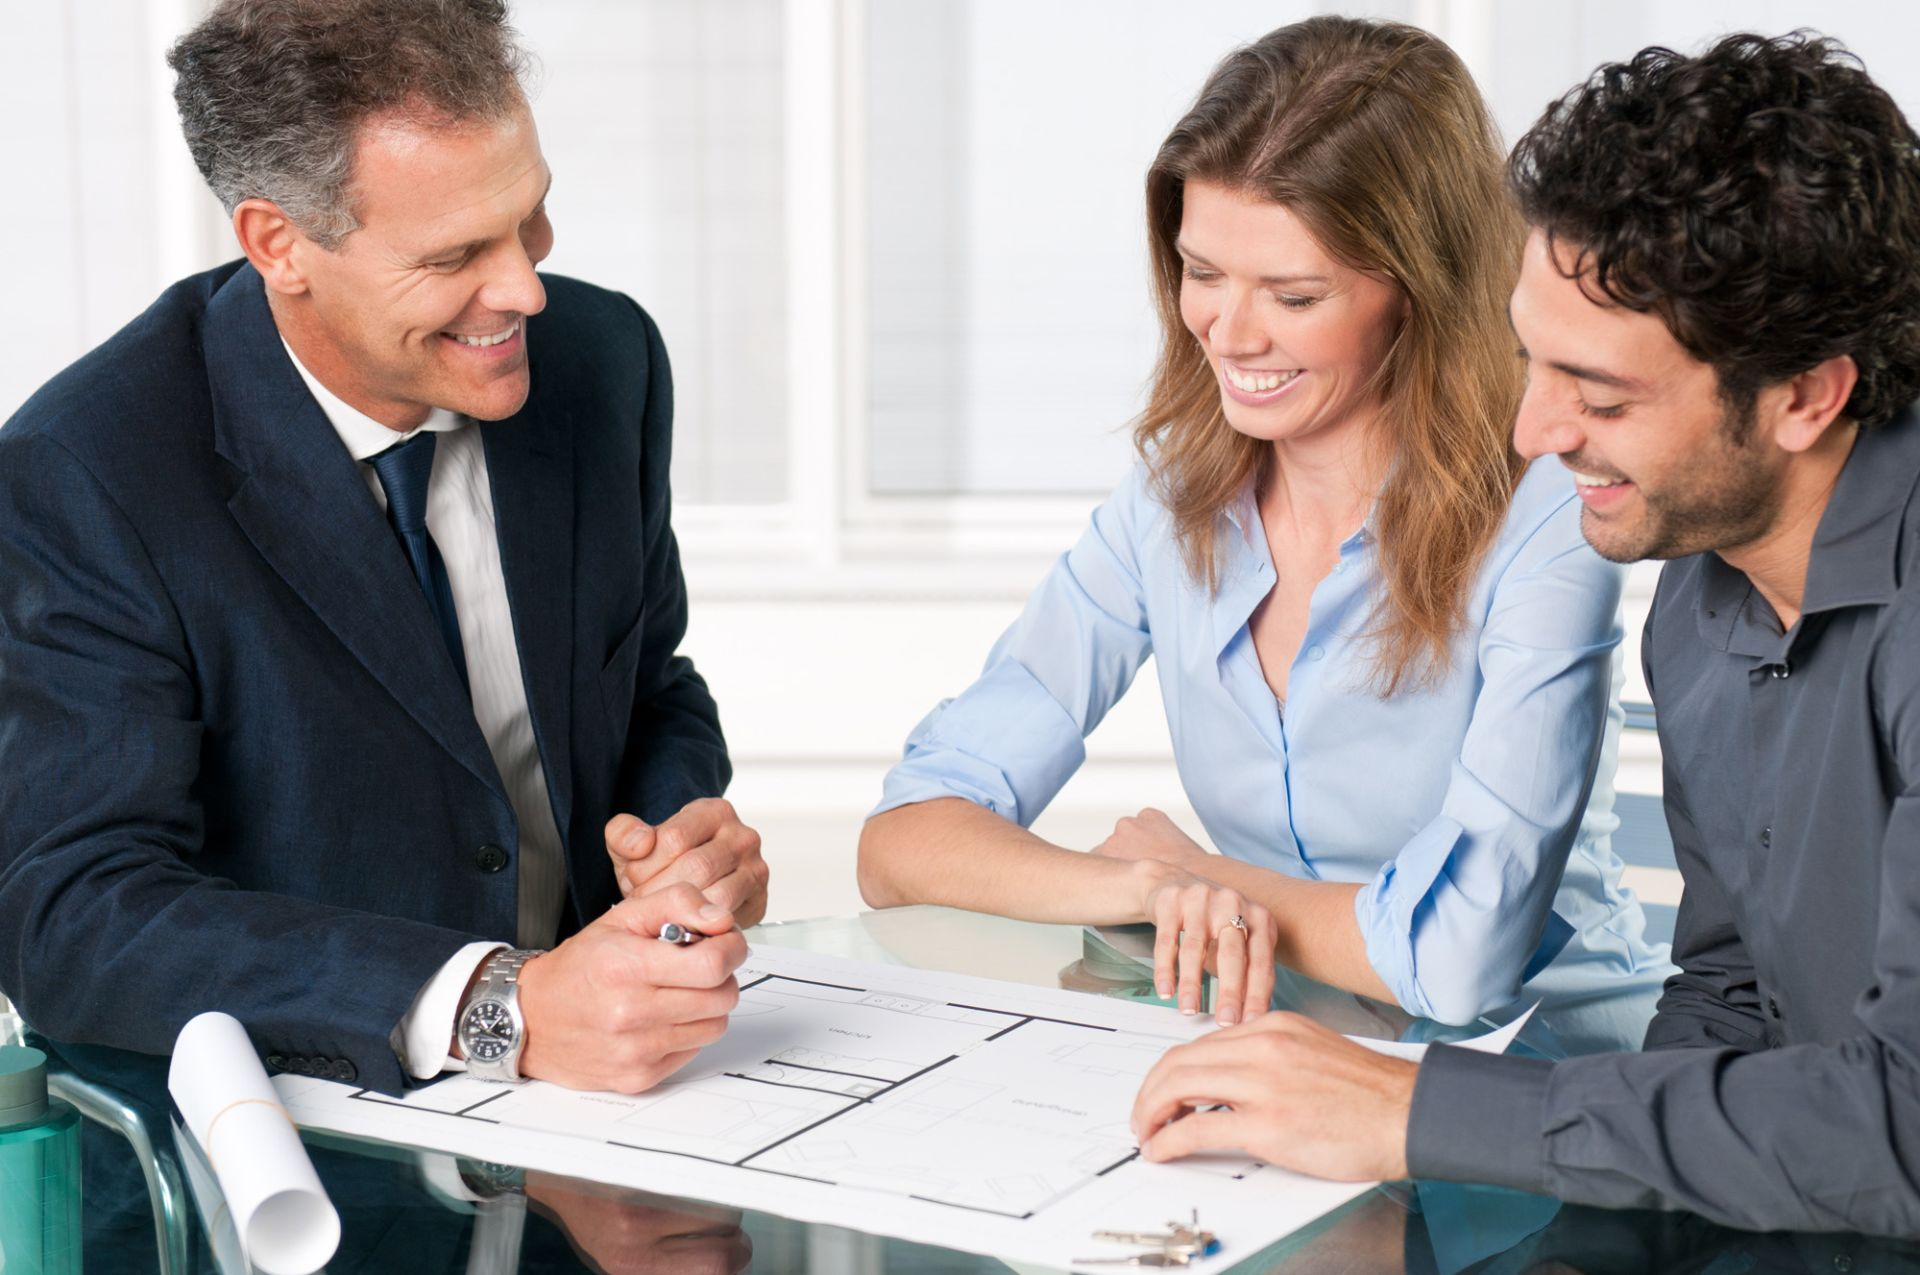 When can I remove private mortgage insurance (PMI) from my home loan?